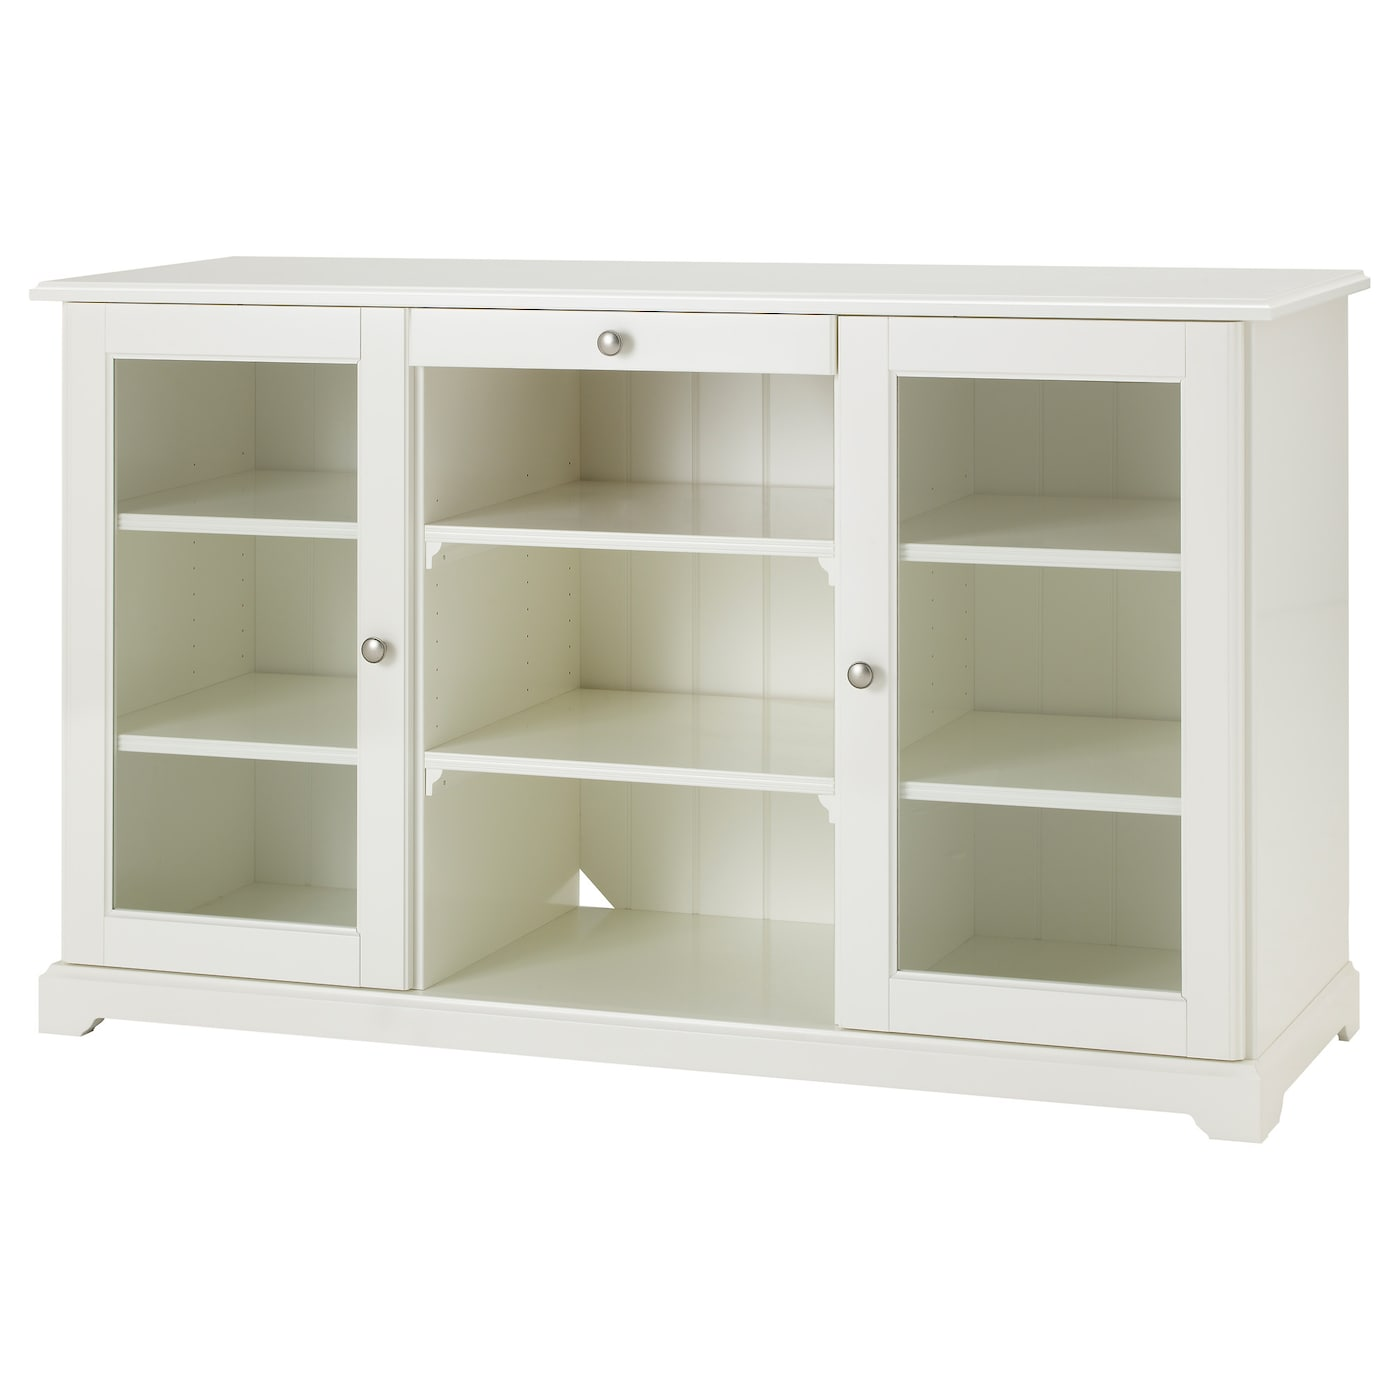 Interior Ikea White Cabinet liatorp sideboard white 145x87 cm ikea a cord outlet in the back makes it easy to gather all cords